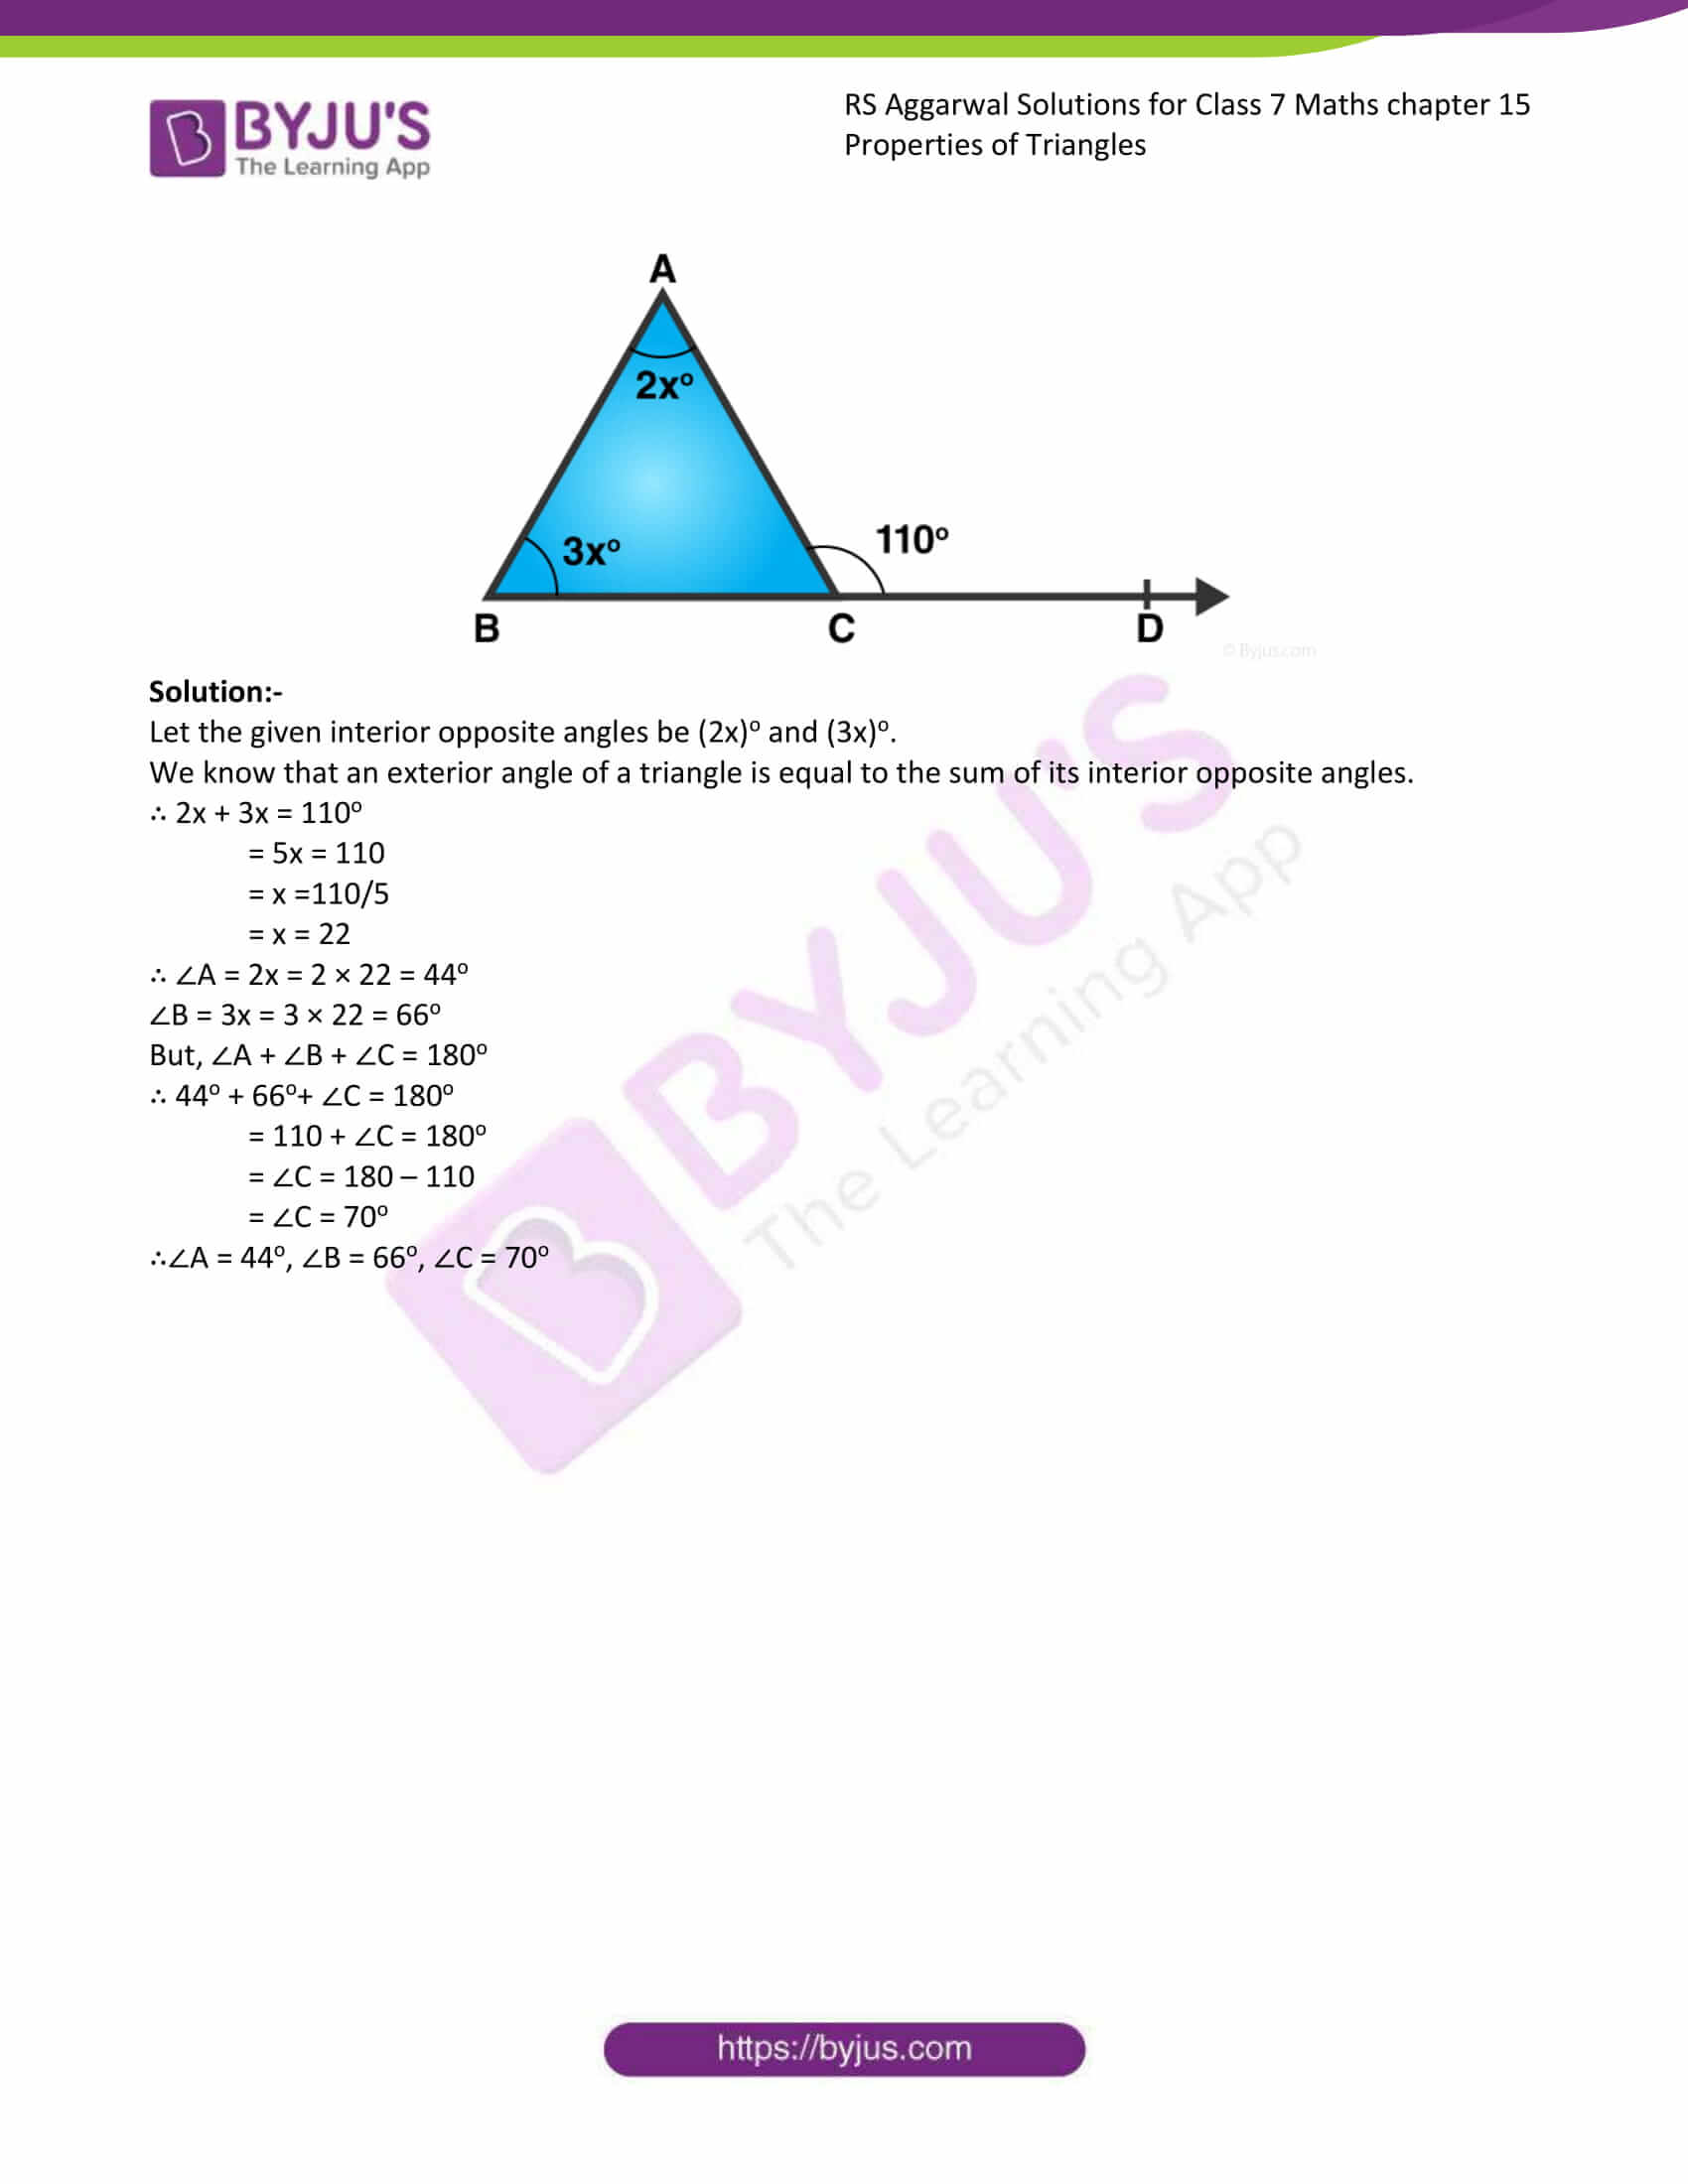 RS Aggarwal Solutions Class 7 Maths Chapter 15 Free Solutions 06